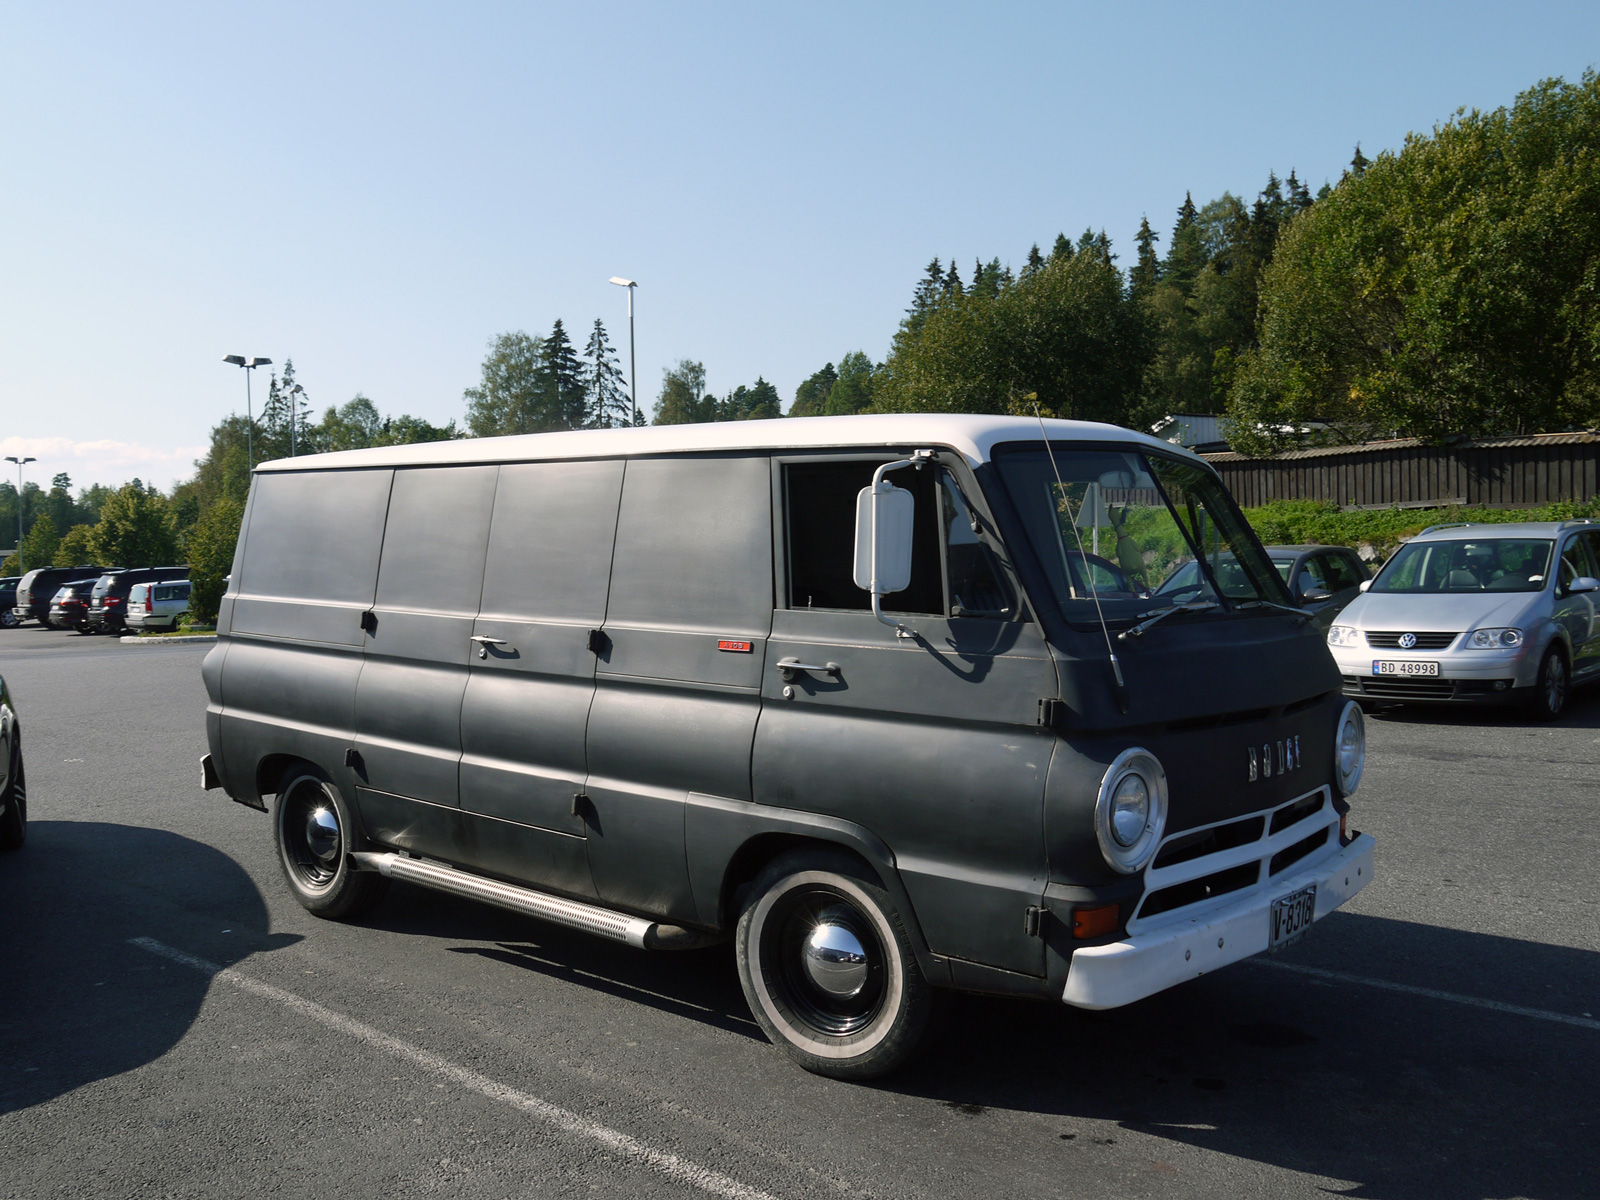 1968 Dodge Tradesman A108 A100 forward control van